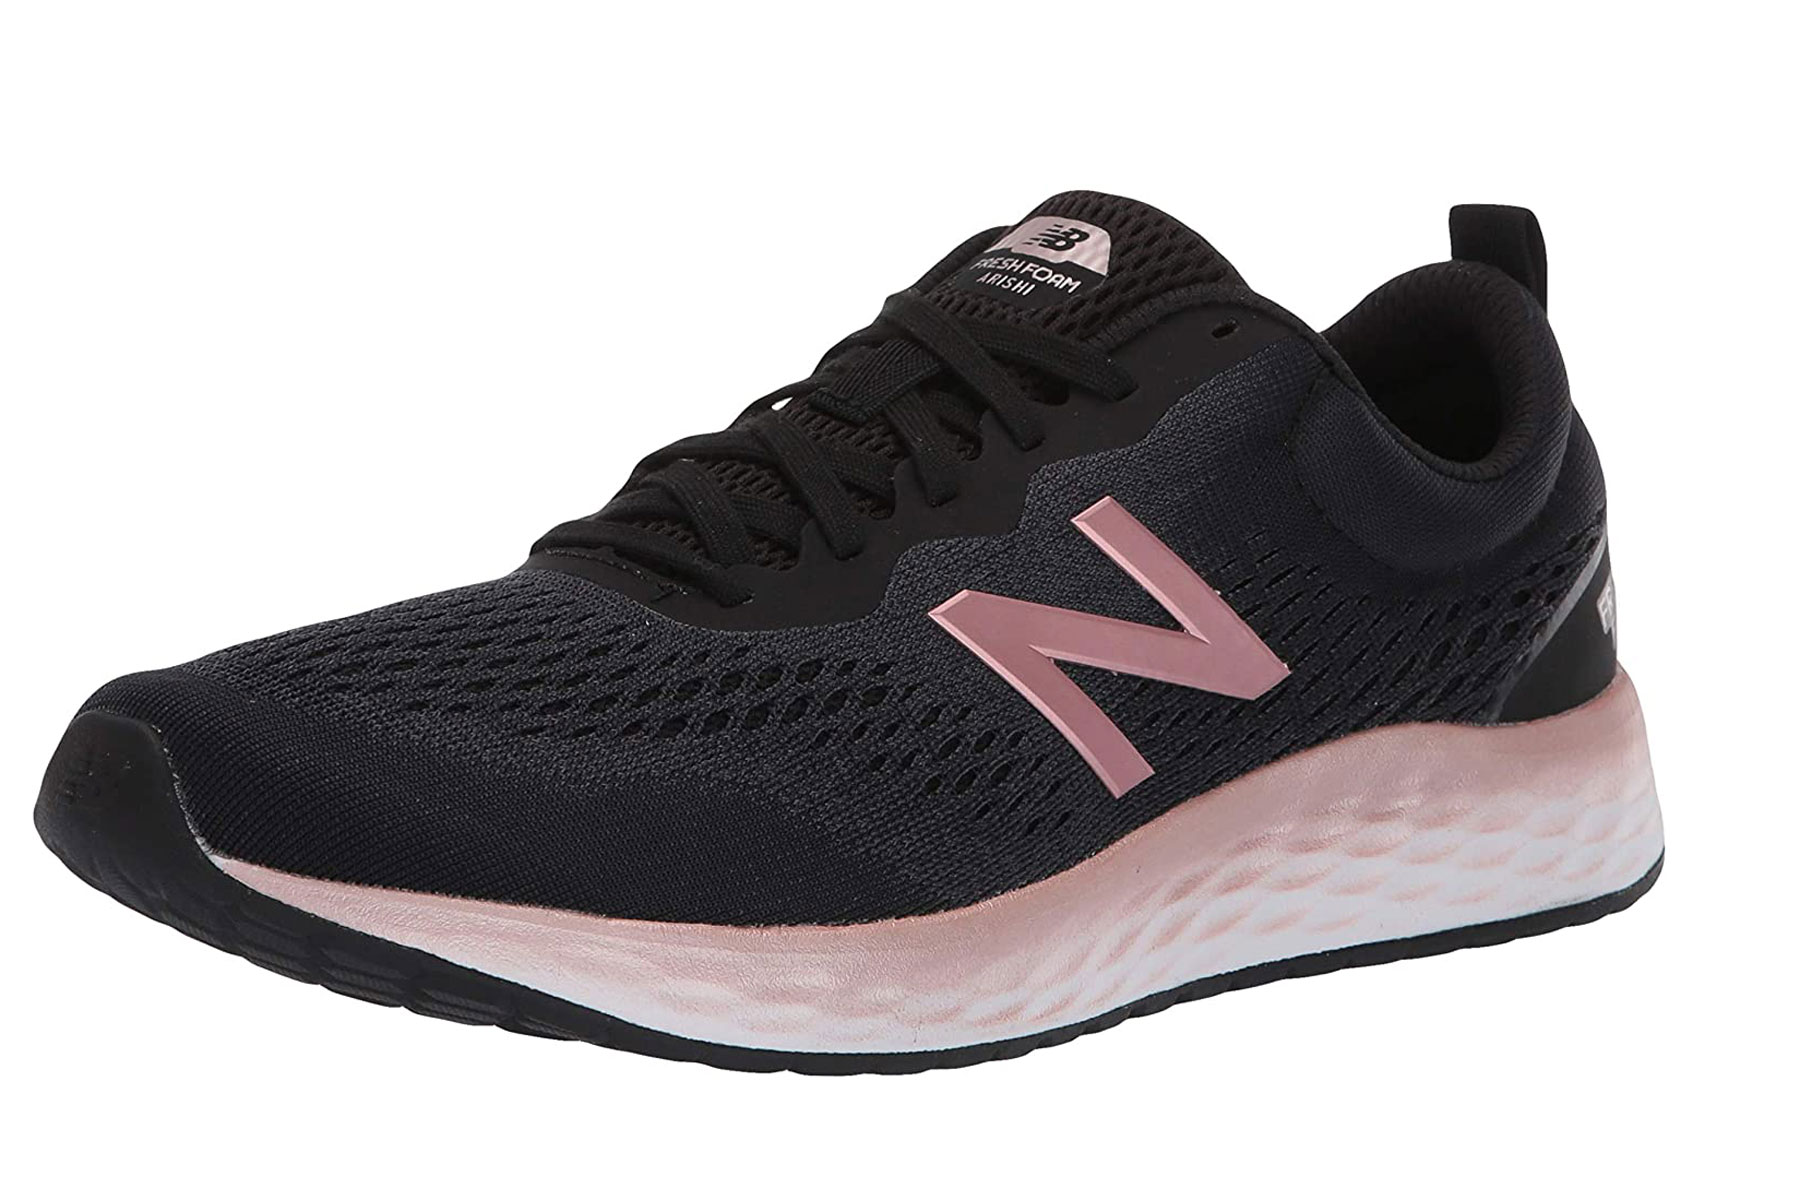 women's black and pink sneakers